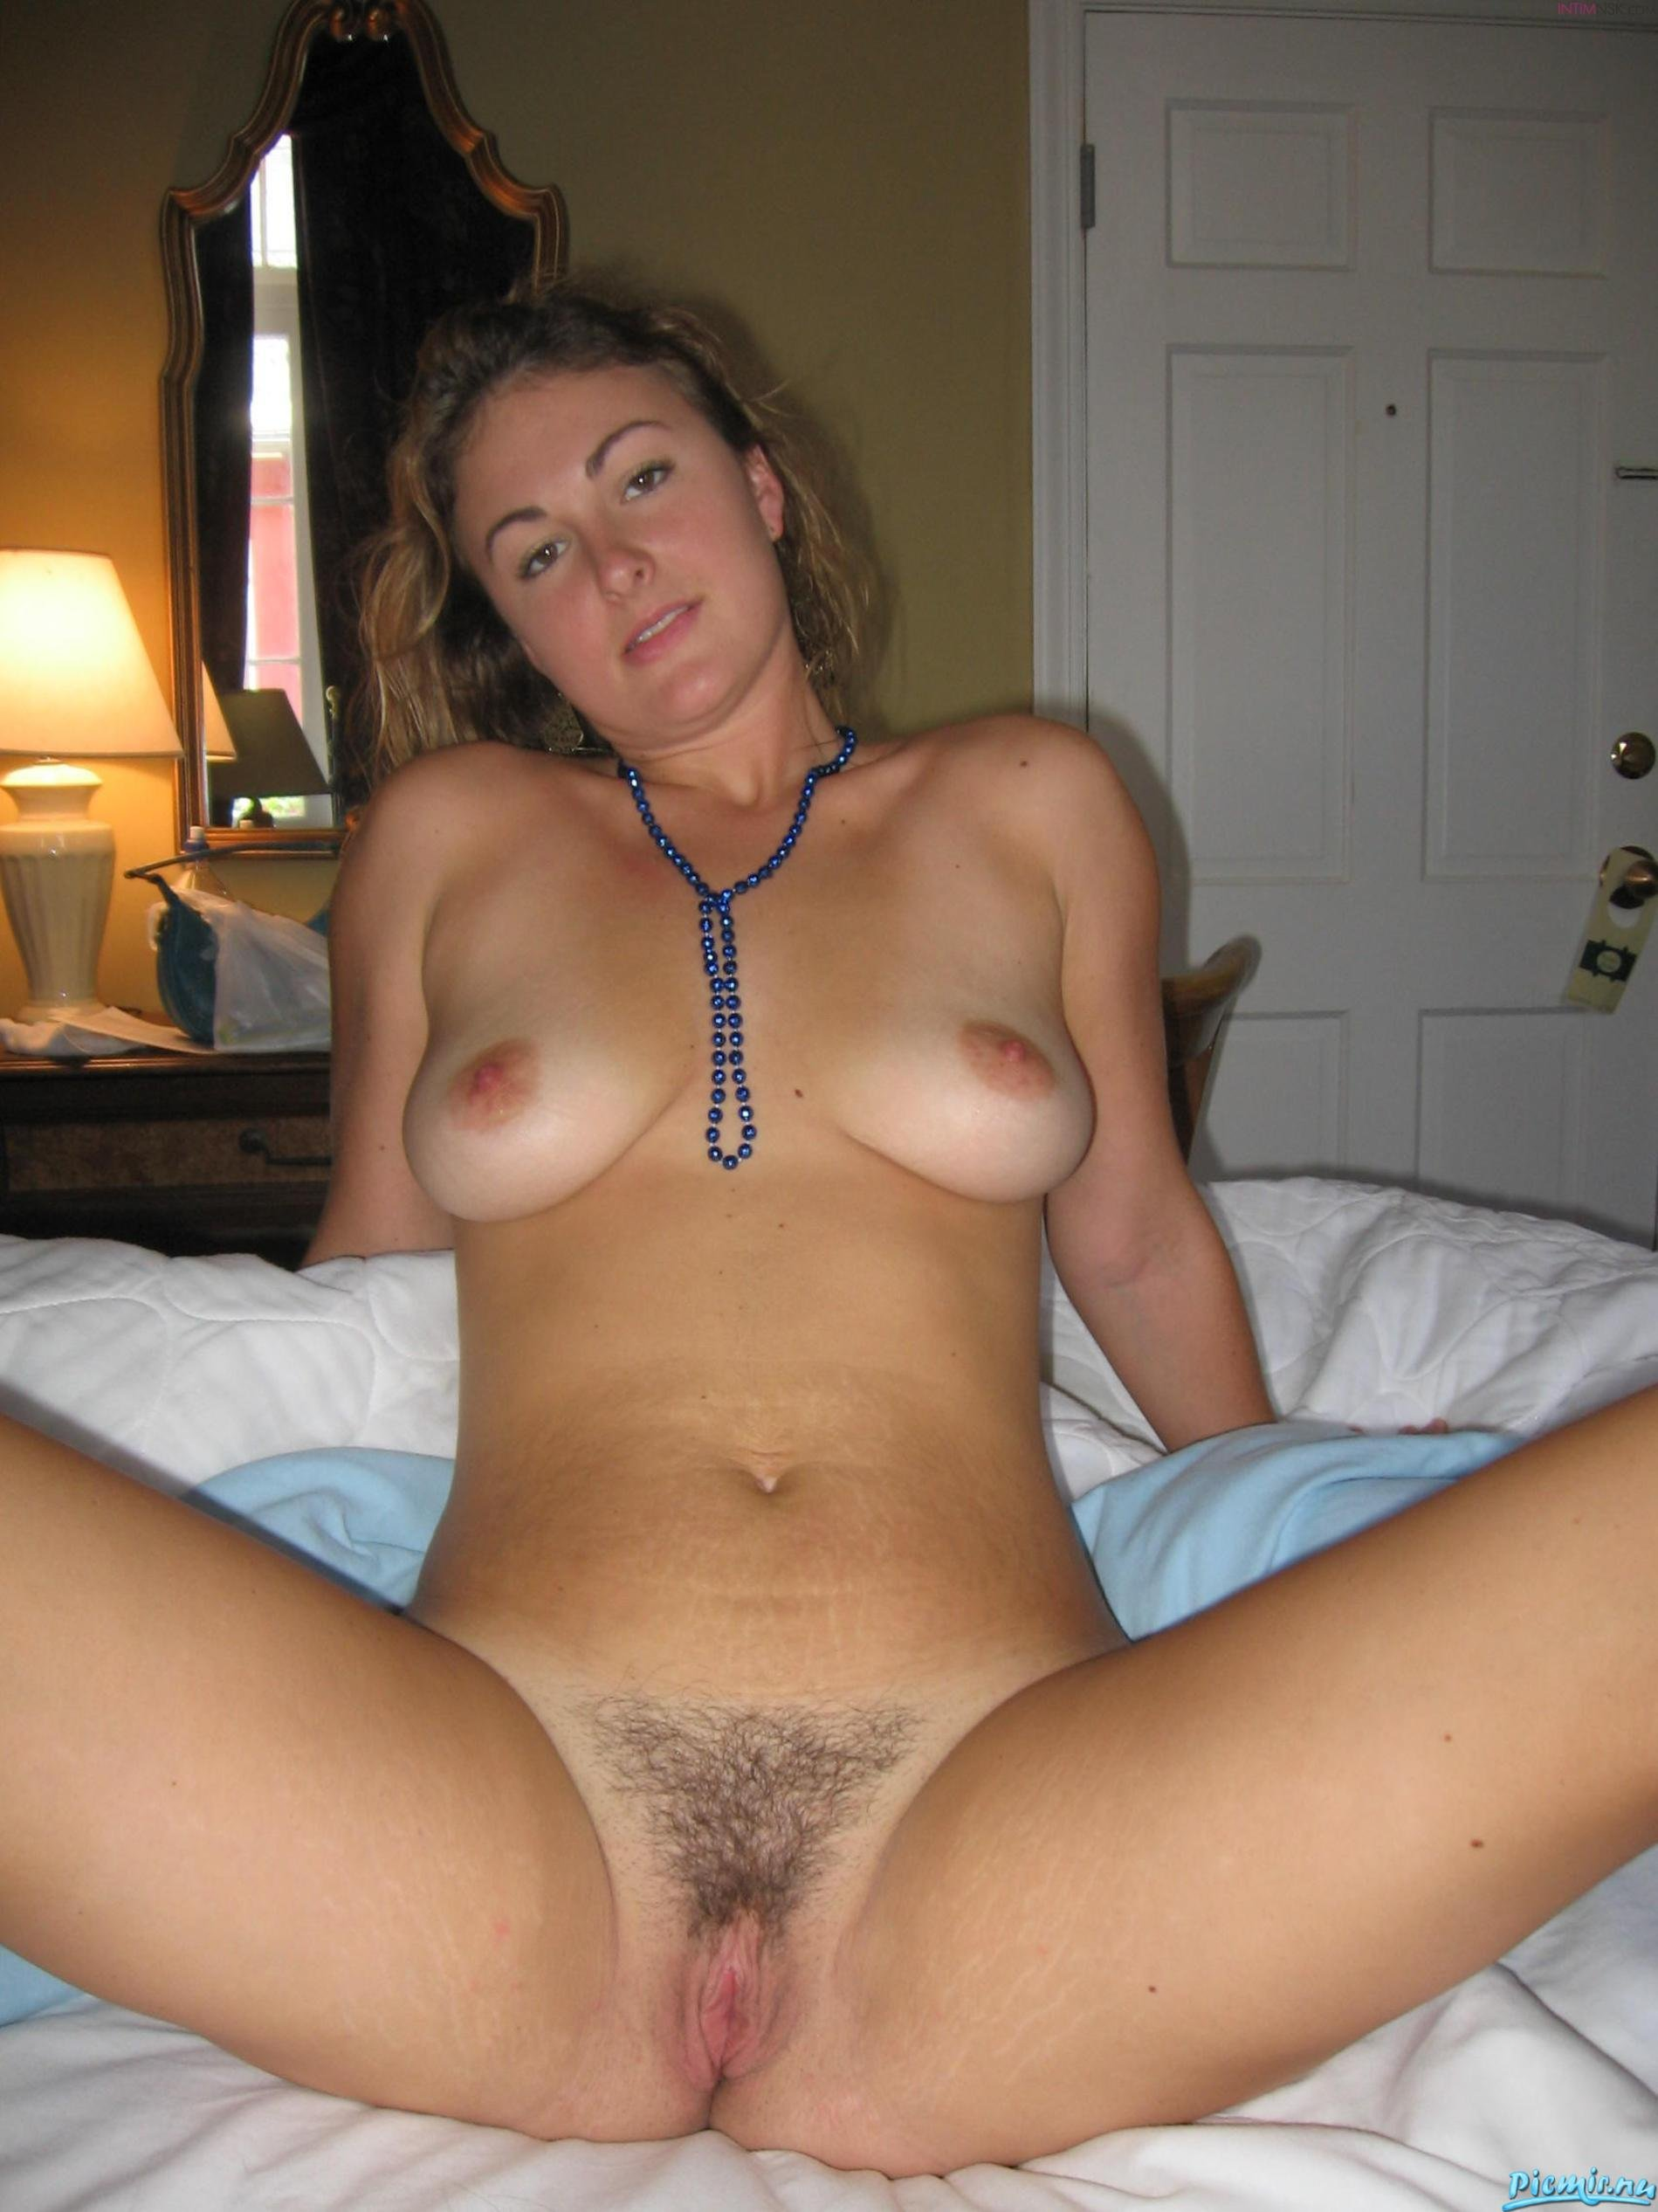 Pics of nude midwest amature girls — img 12